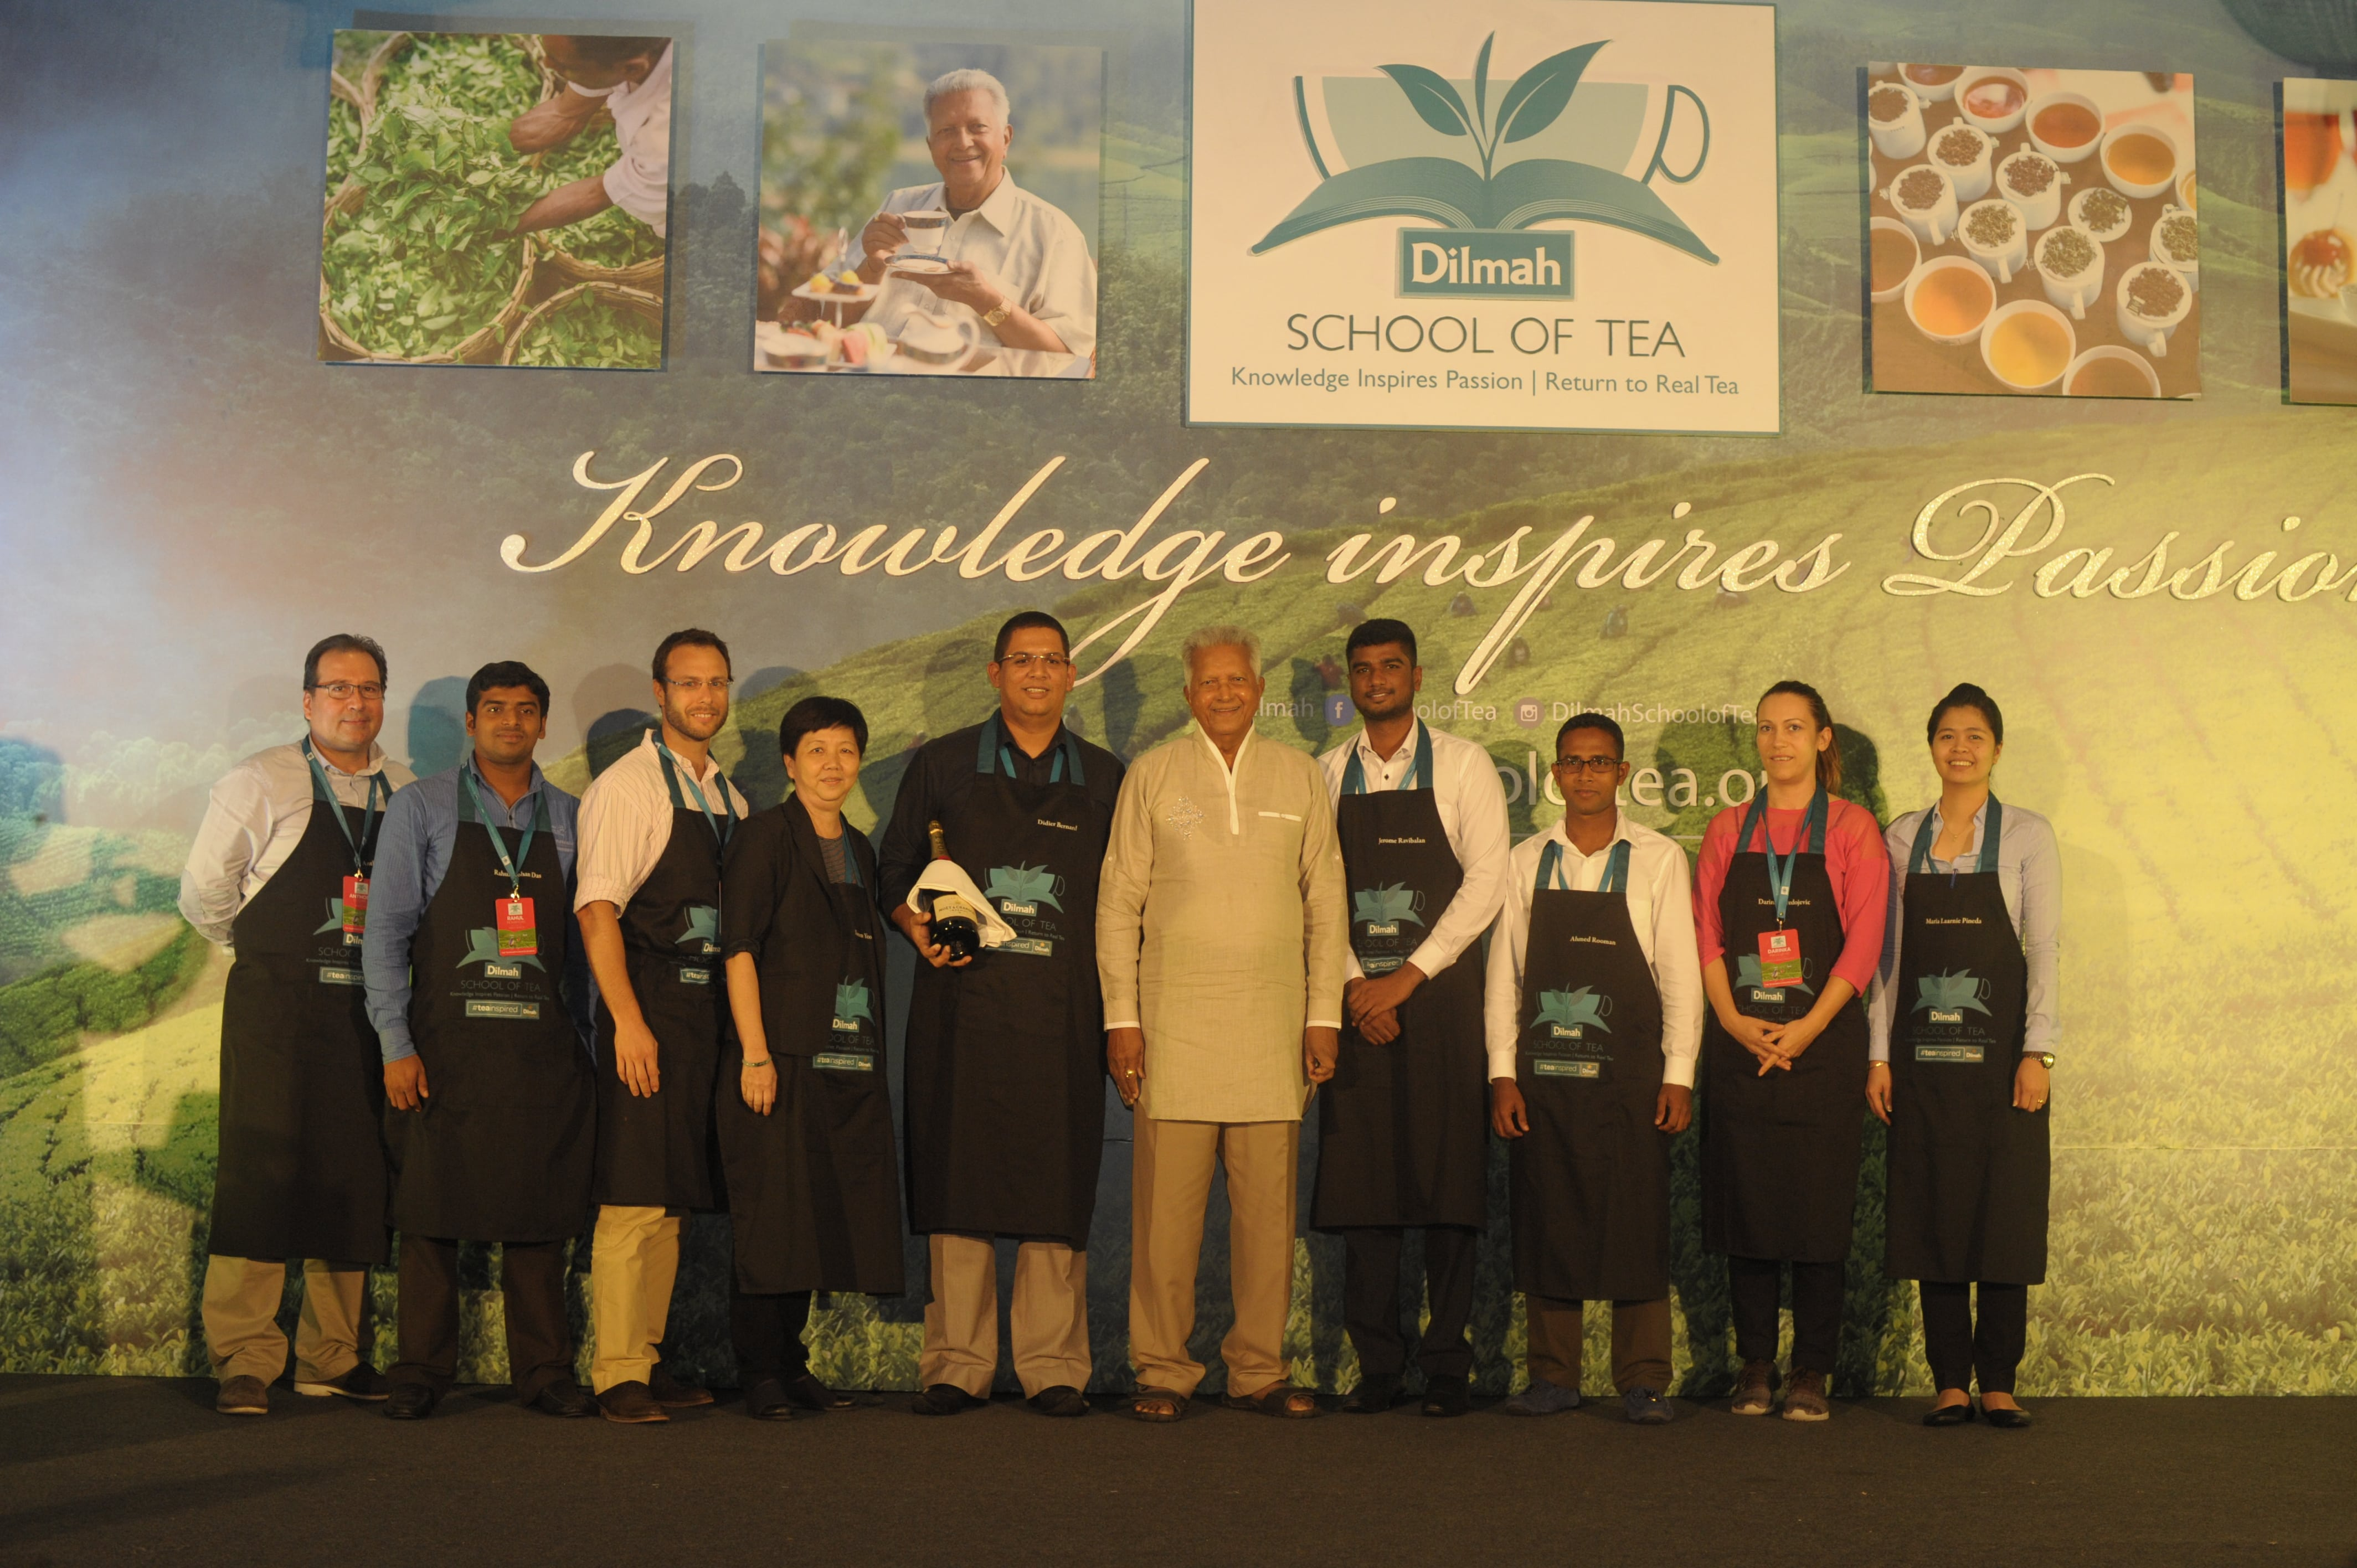 Winners of Tea inspired beverage competition - The Teamaker's Private Reserve team